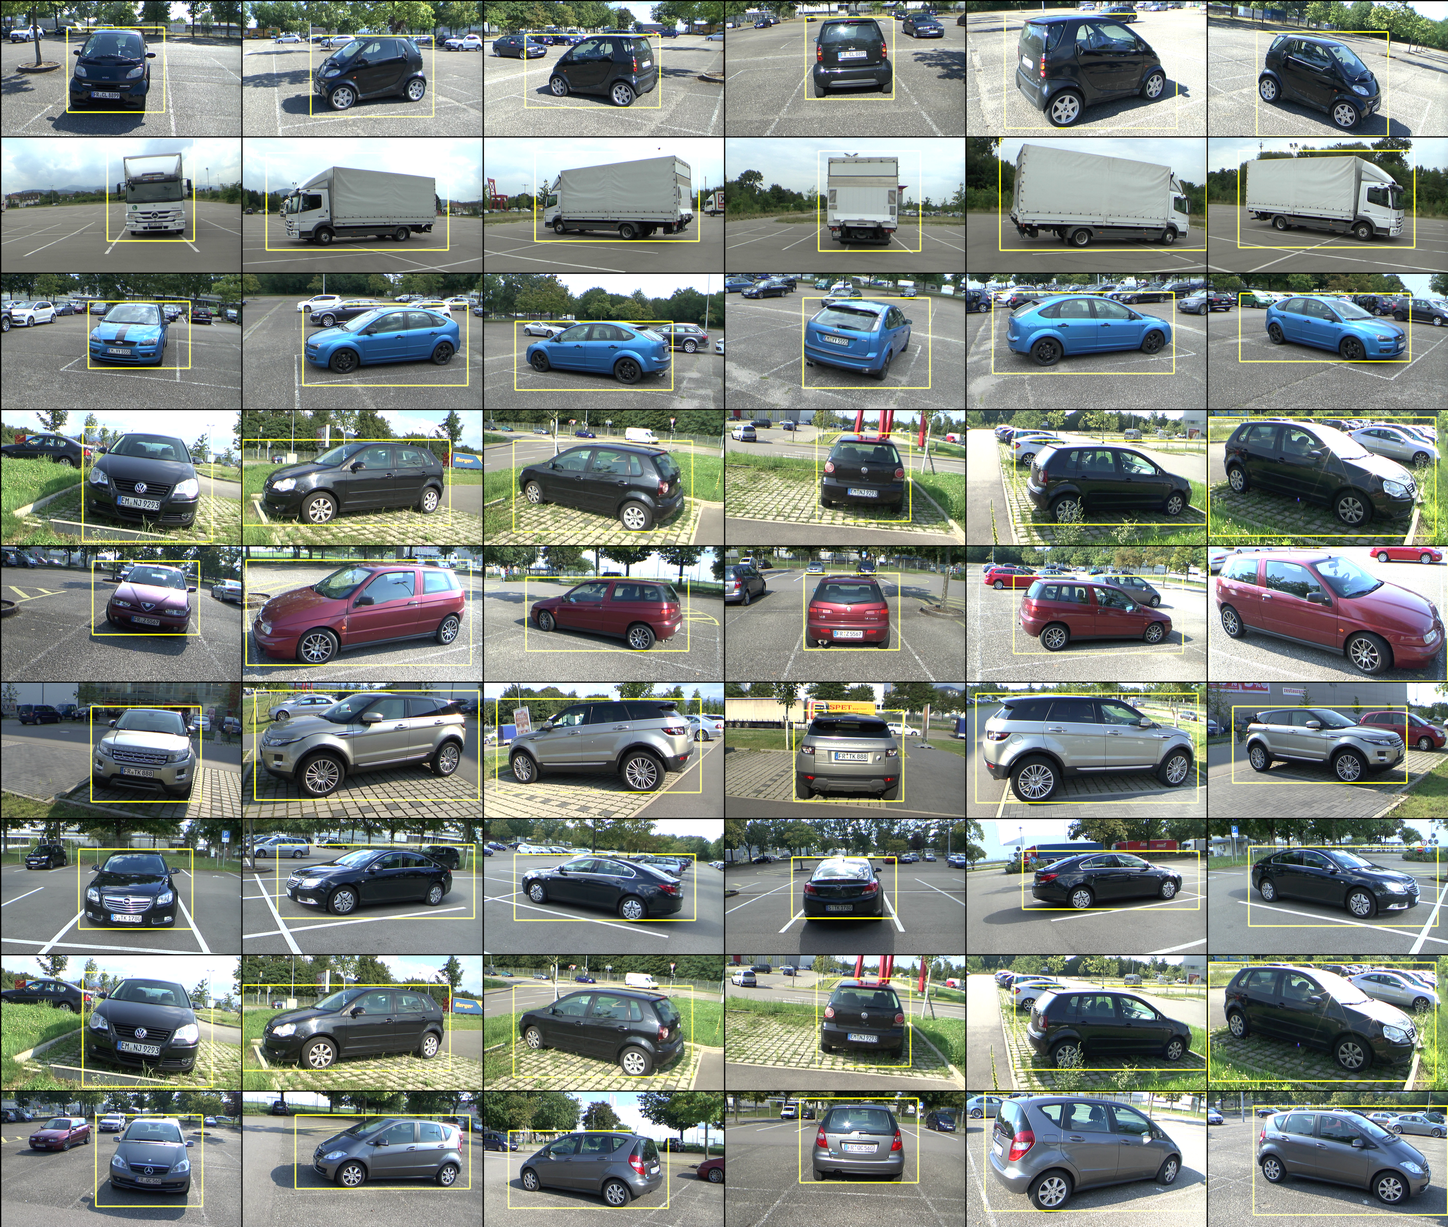 Unsupervised Generation of a Viewpoint Annotated Car Dataset